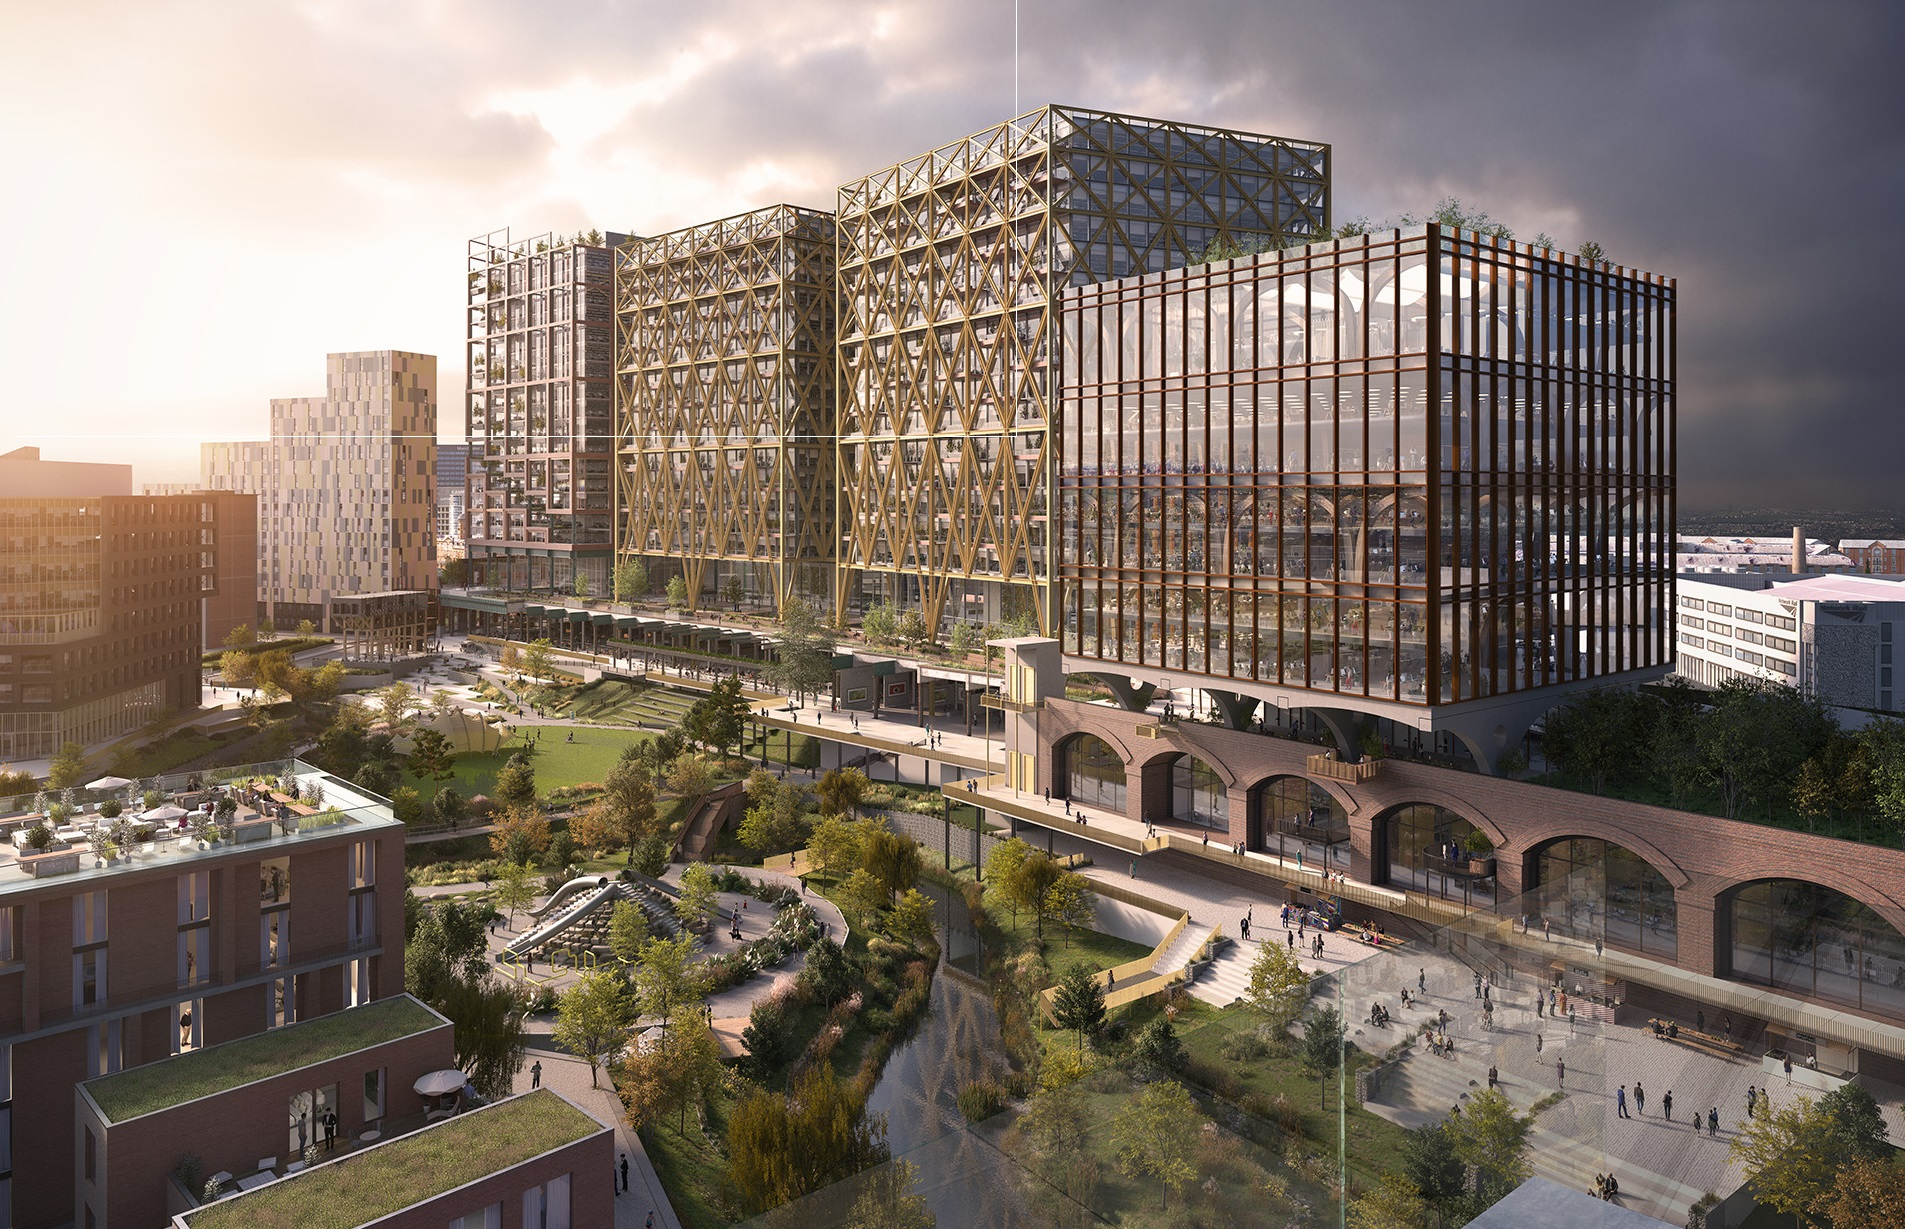 Architects' projects to benefit from £900m boost